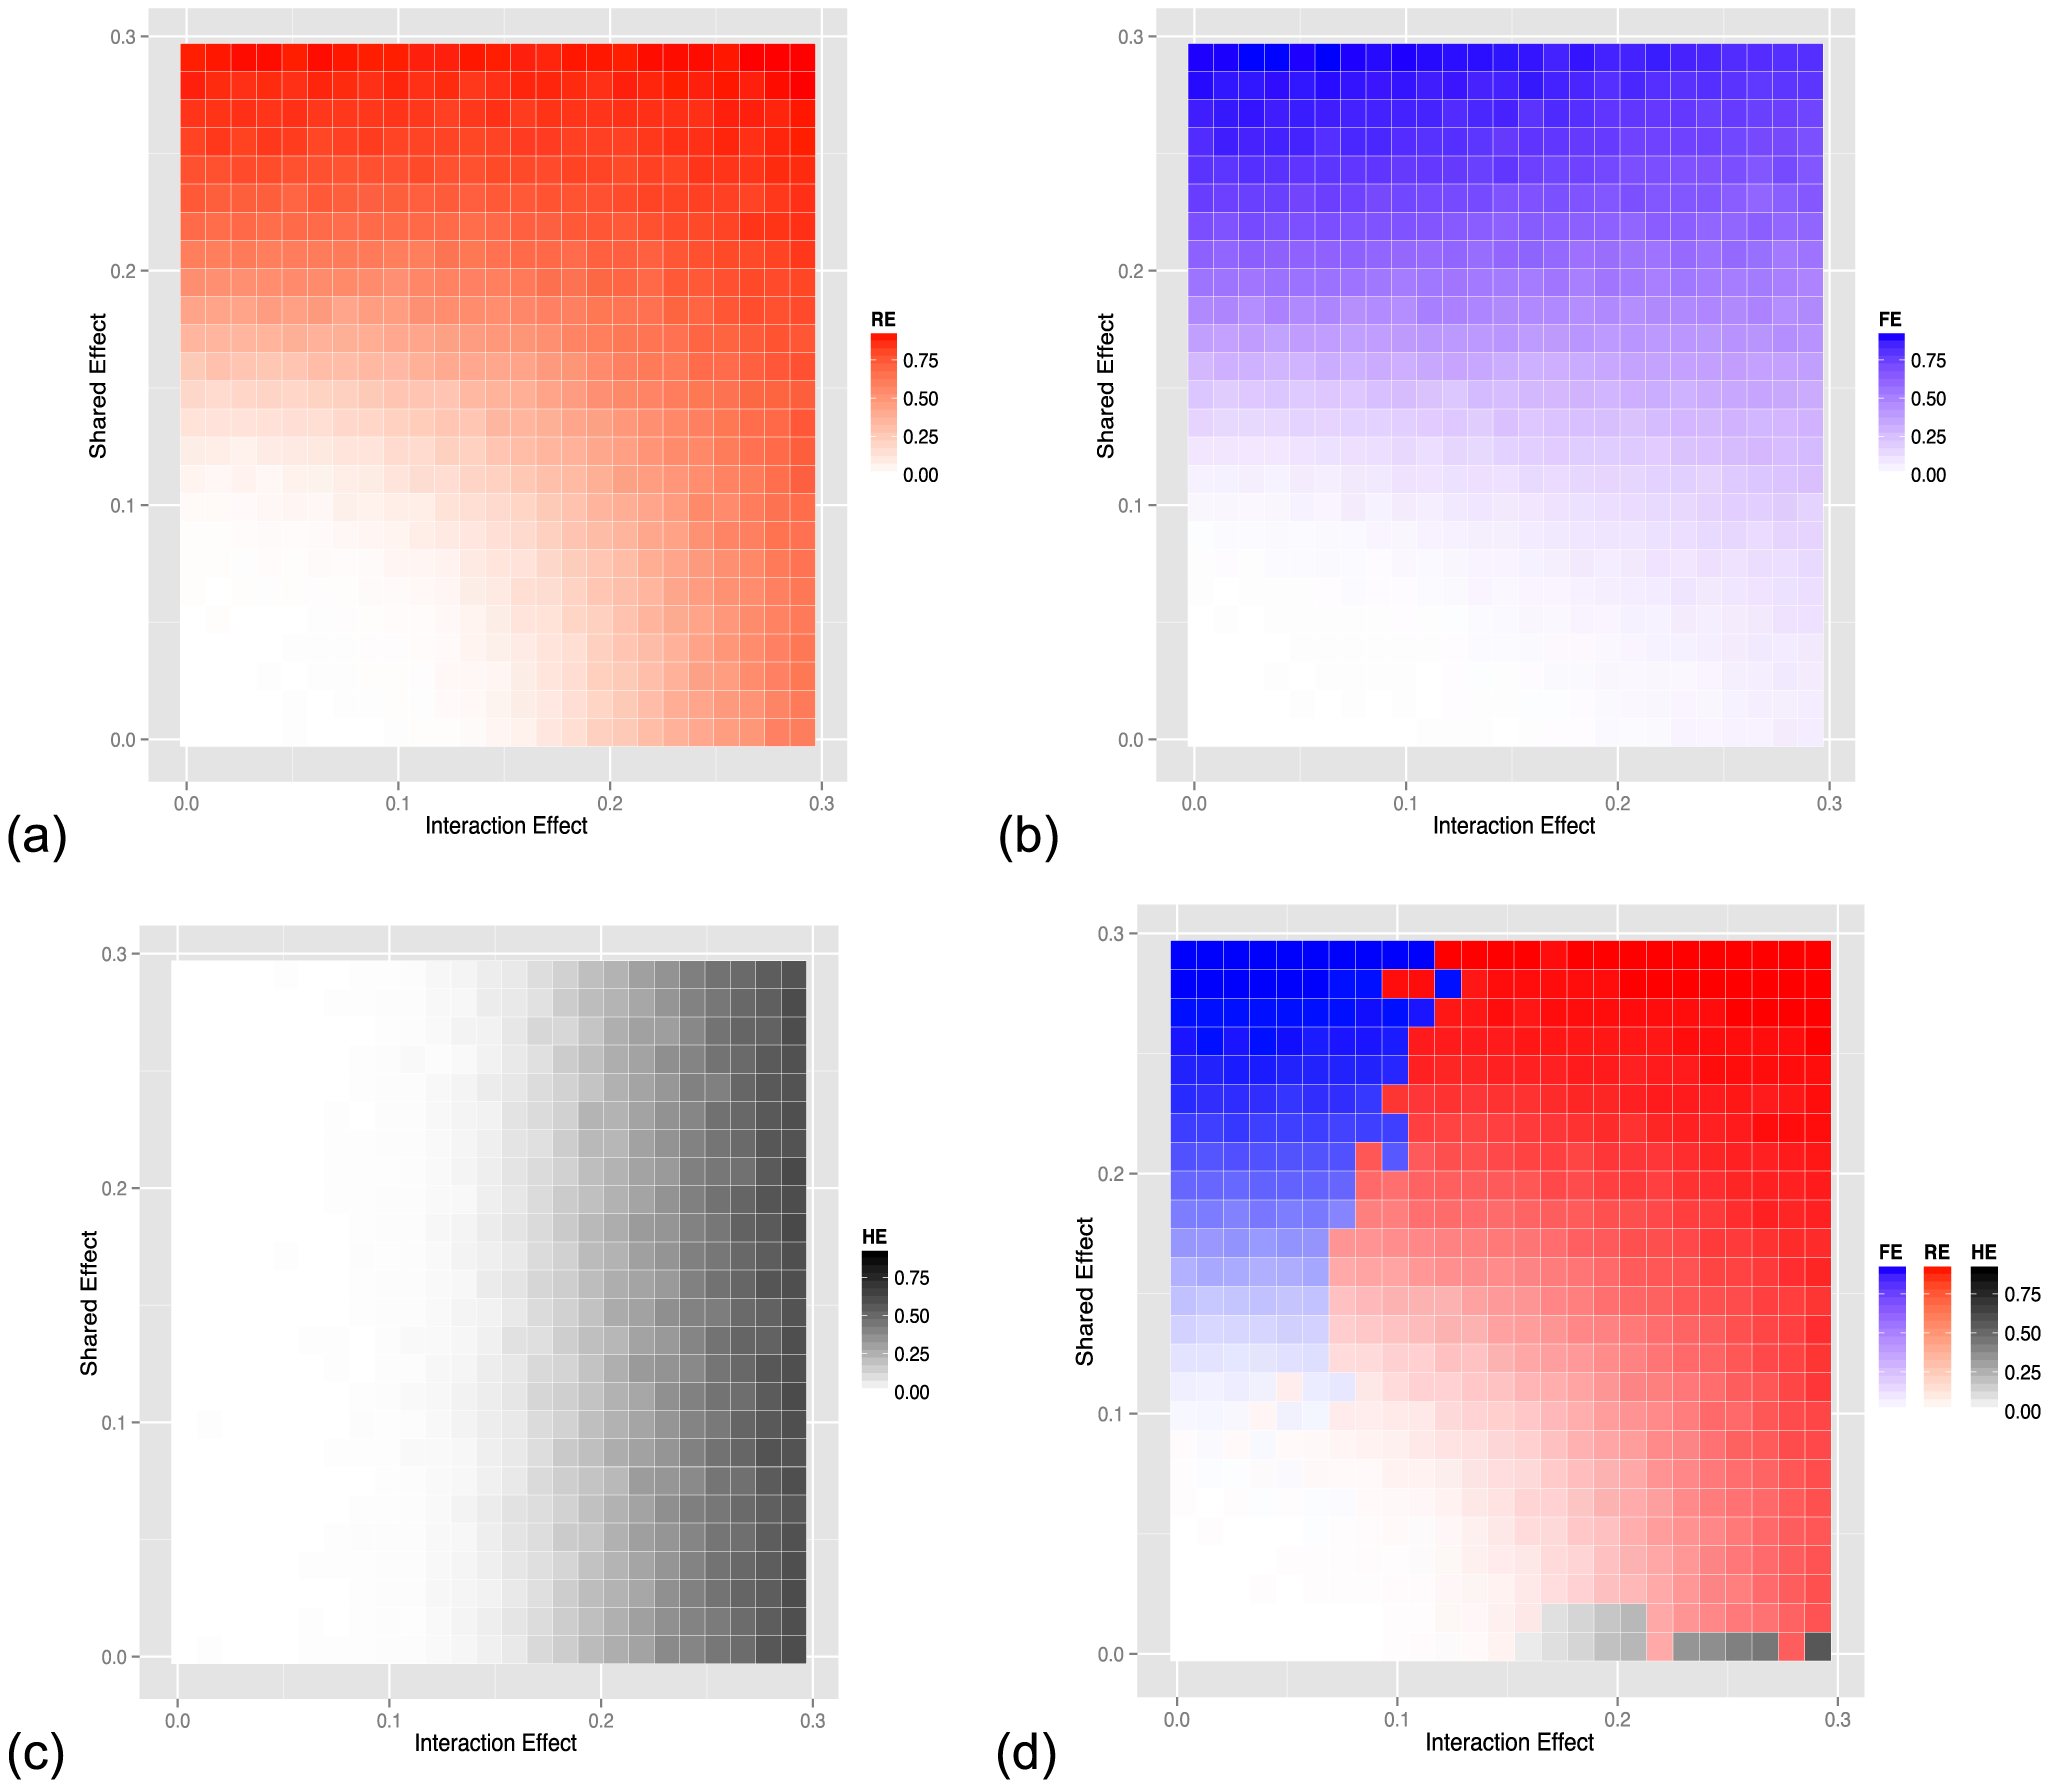 Power of (a) random-effect, (b) fixed-effect meta-analysis and (c) heterogeneity meta-analysis methods as a function of the effect size and the strength of the interaction effect (heterogeneity). (d) shows a comparison of the three methods with the color corresponding to the method with the highest power.